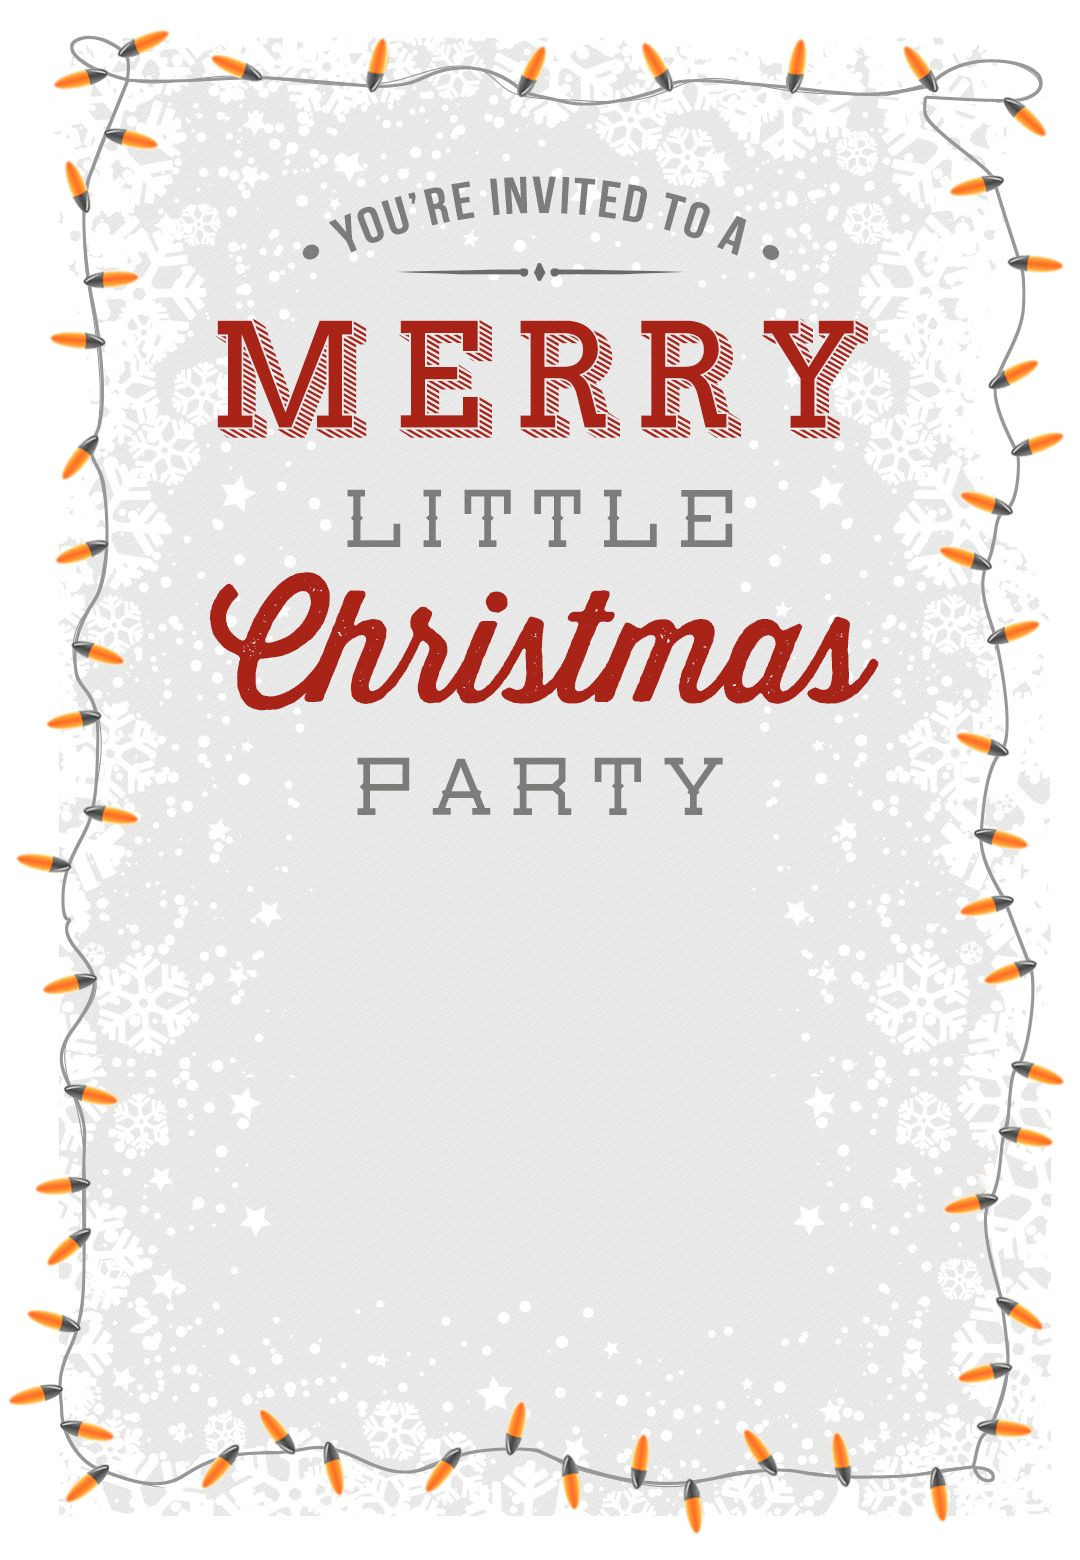 A Merry Little Party Free Printable Christmas Invi